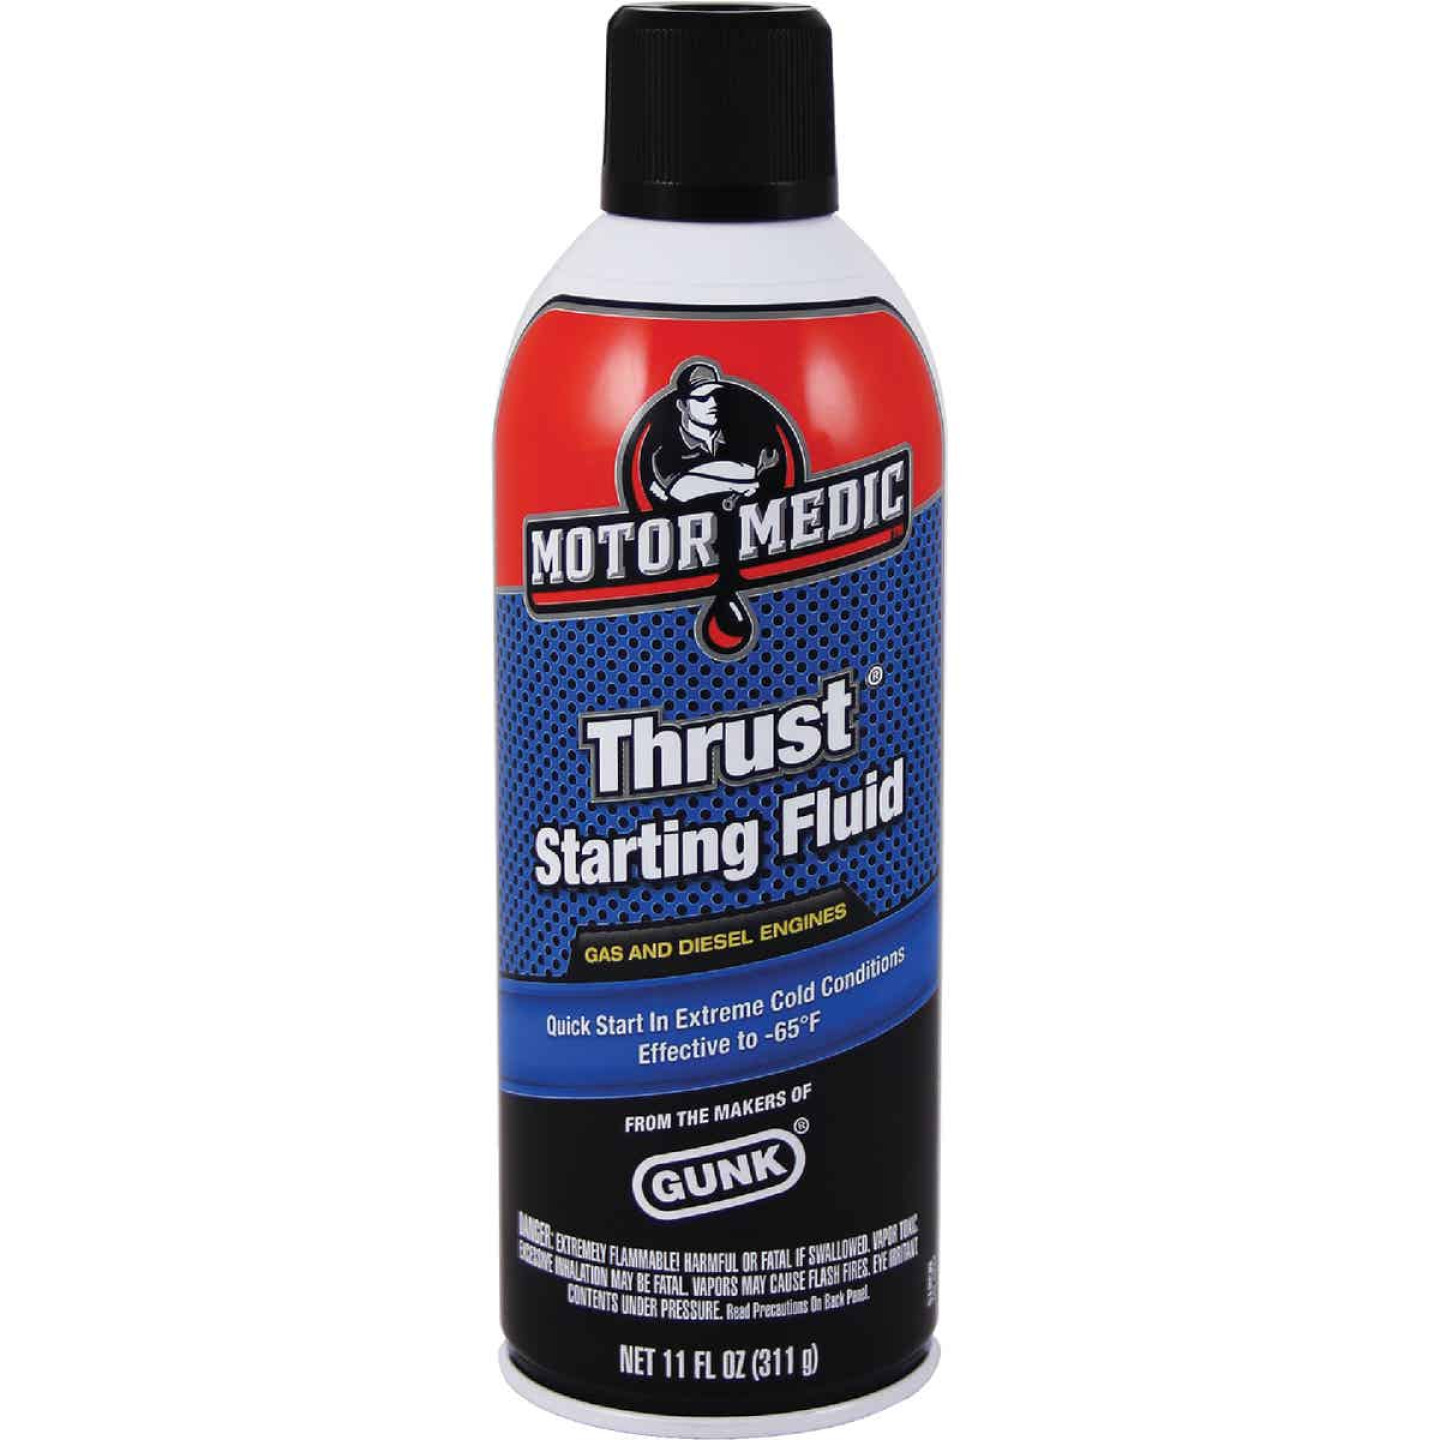 MotorMedic 11 Oz. Thrust Starting Fluid Image 1